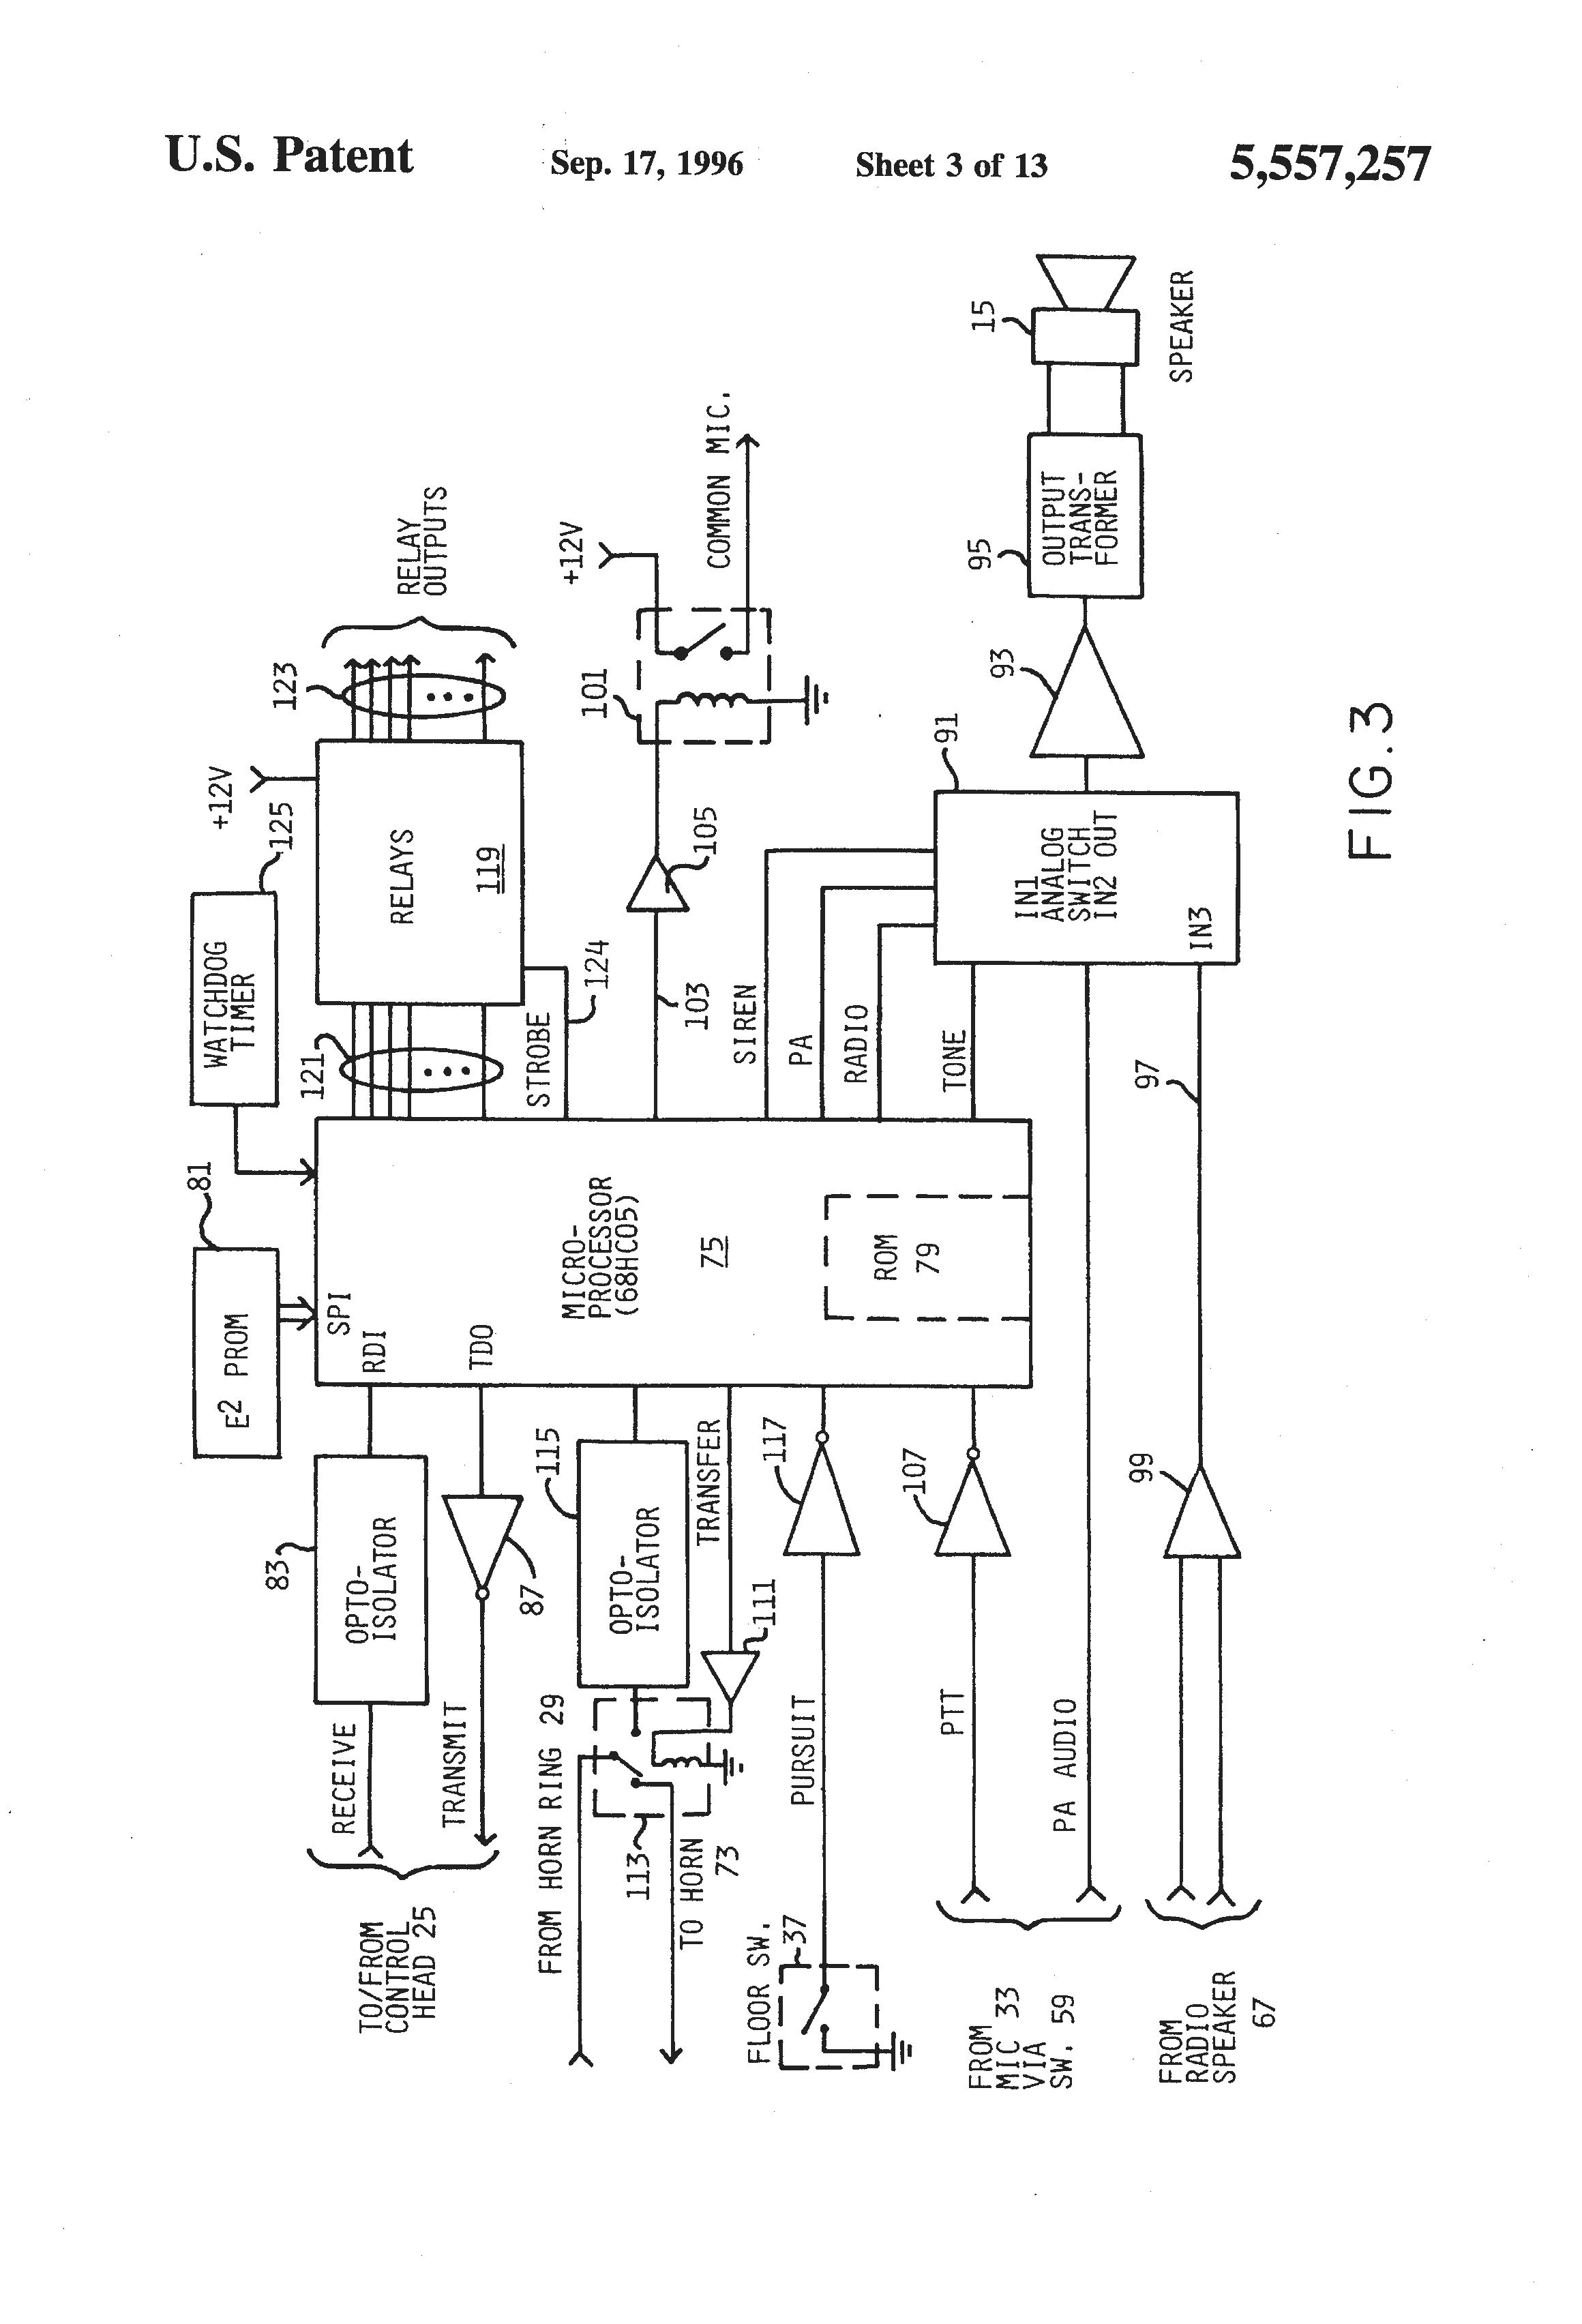 Federal Signal Pa300 Wiring - Today Wiring Schematic Diagram on